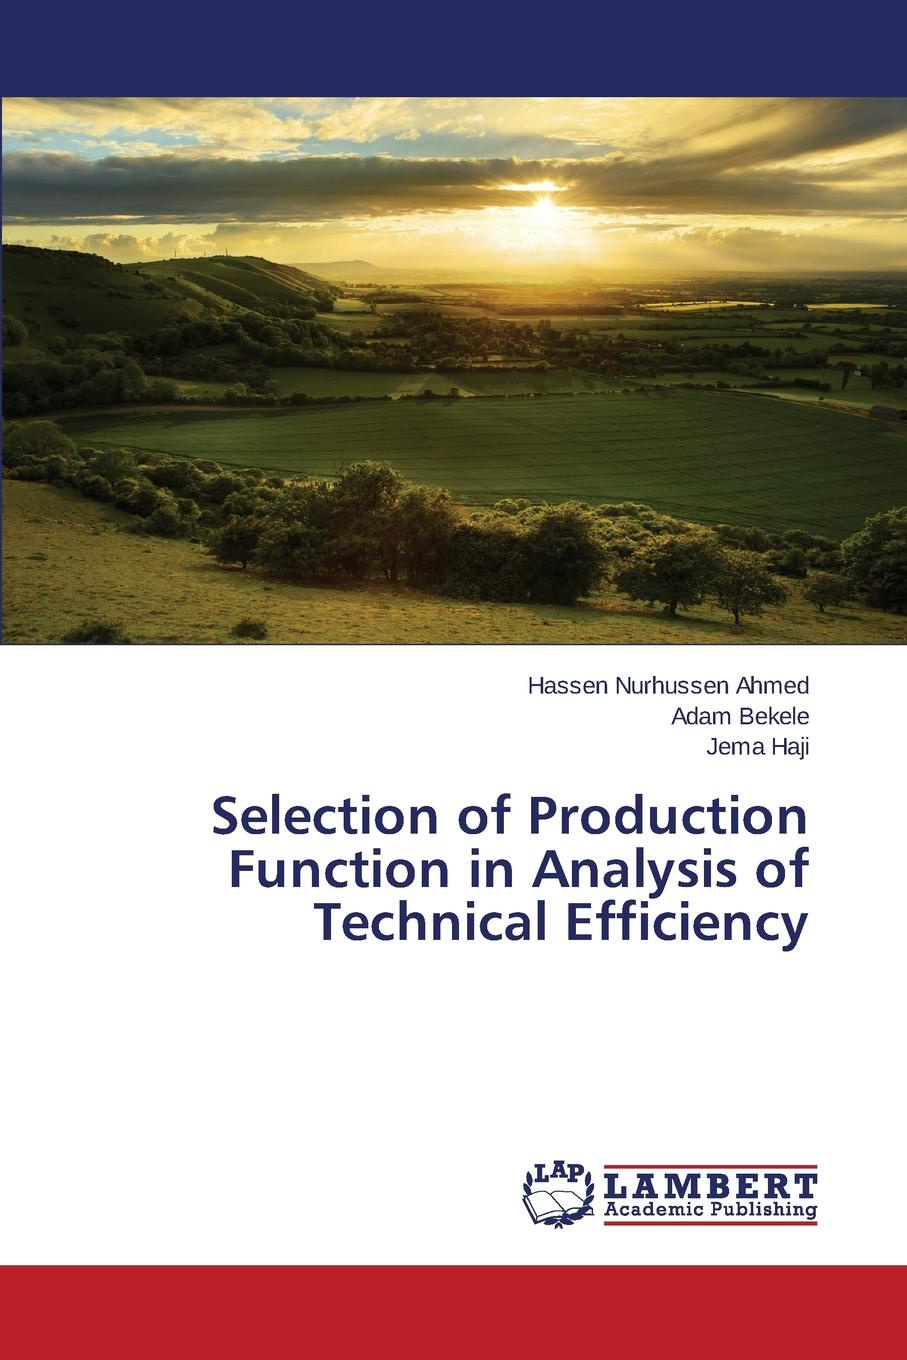 Ahmed Hassen Nurhussen, Bekele Adam, Haji Jema Selection of Production Function in Analysis of Technical Efficiency legumes